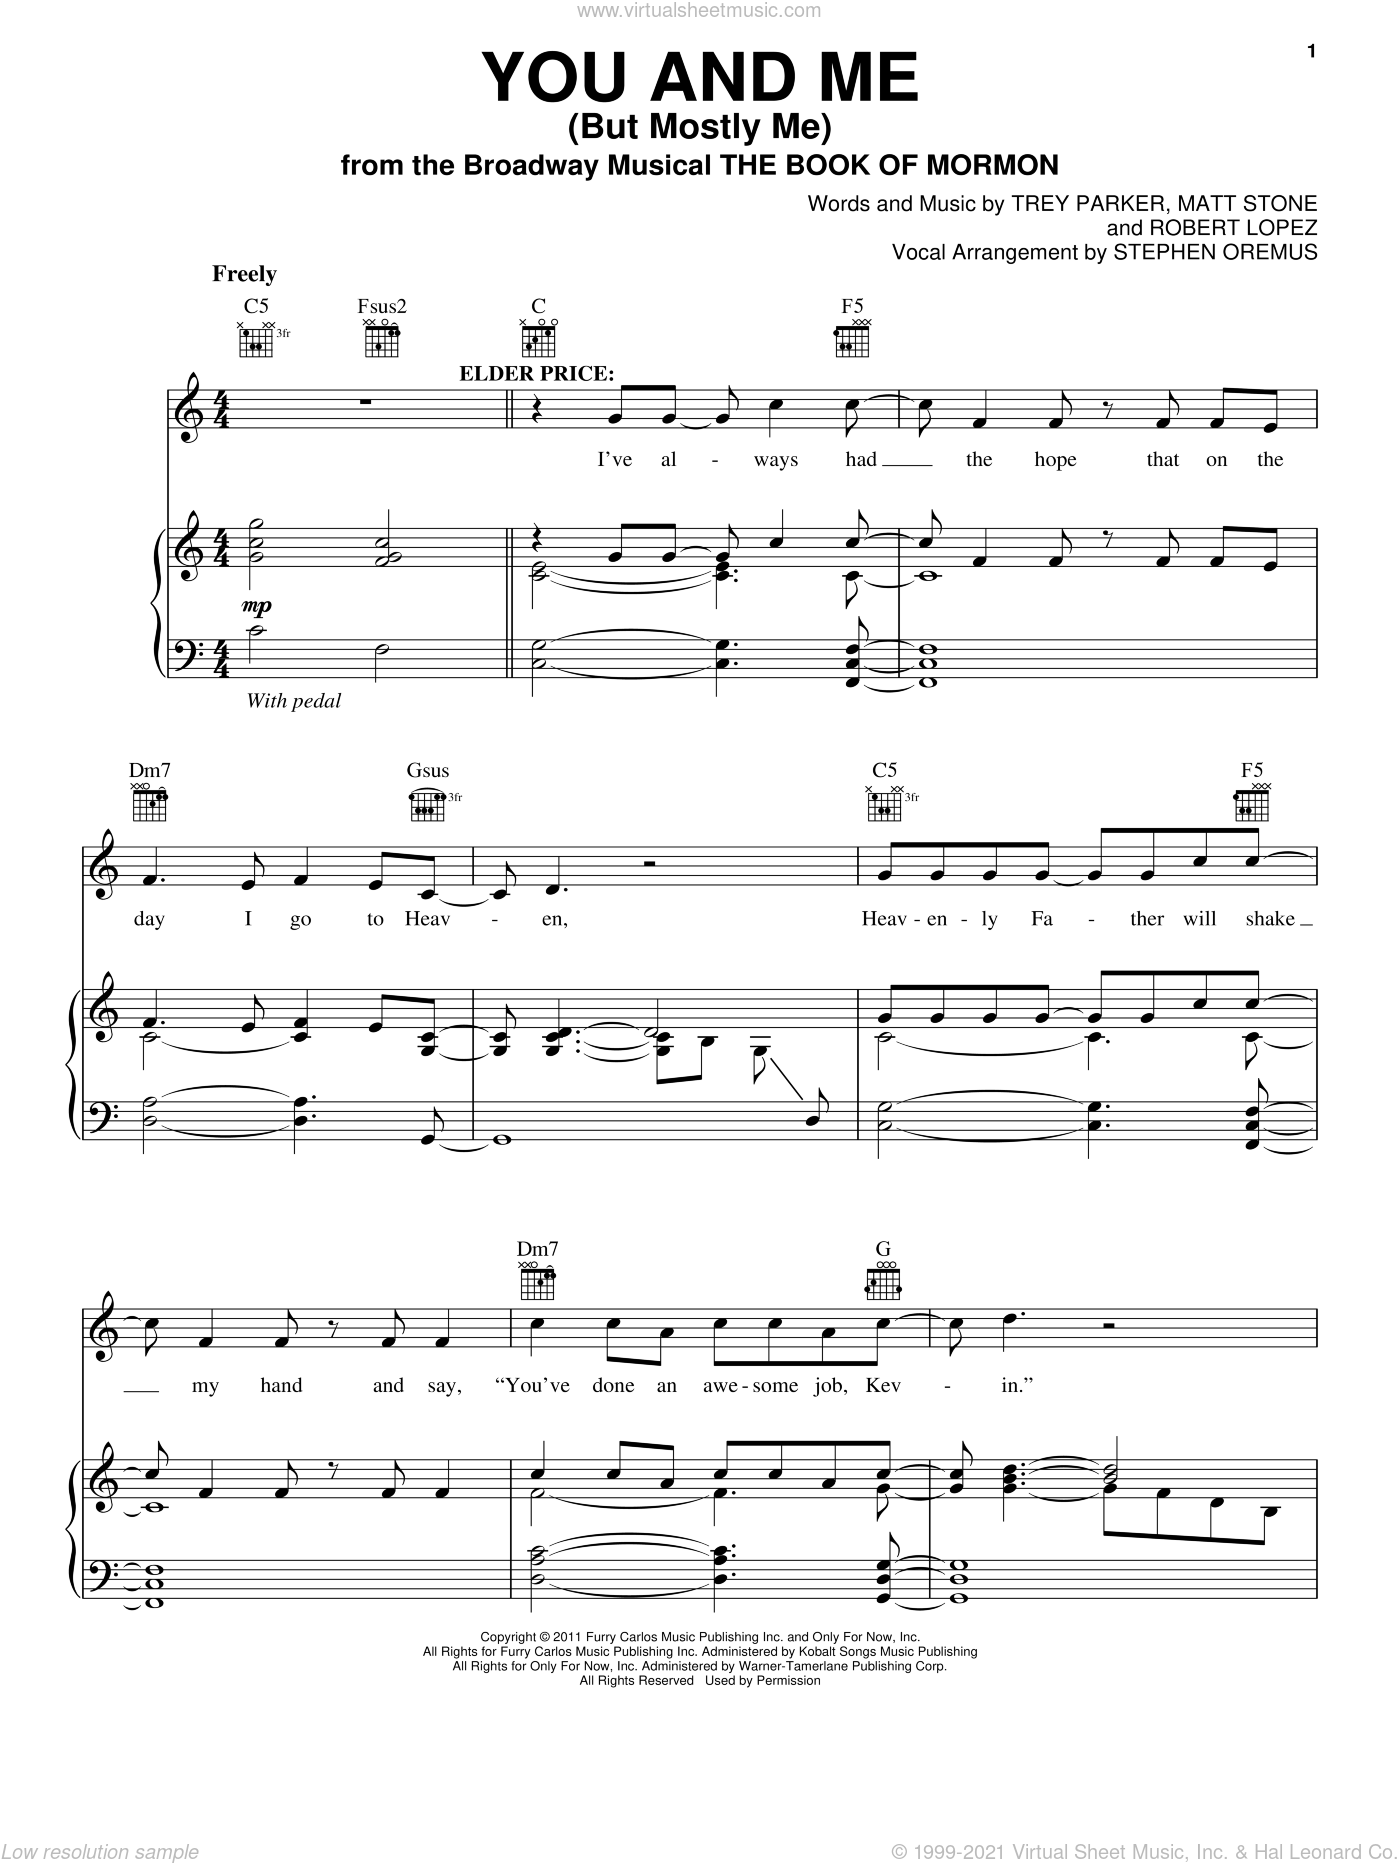 You And Me (But Mostly Me) sheet music for voice, piano or guitar by Robert Lopez, Matt Stone and Trey Parker, intermediate skill level